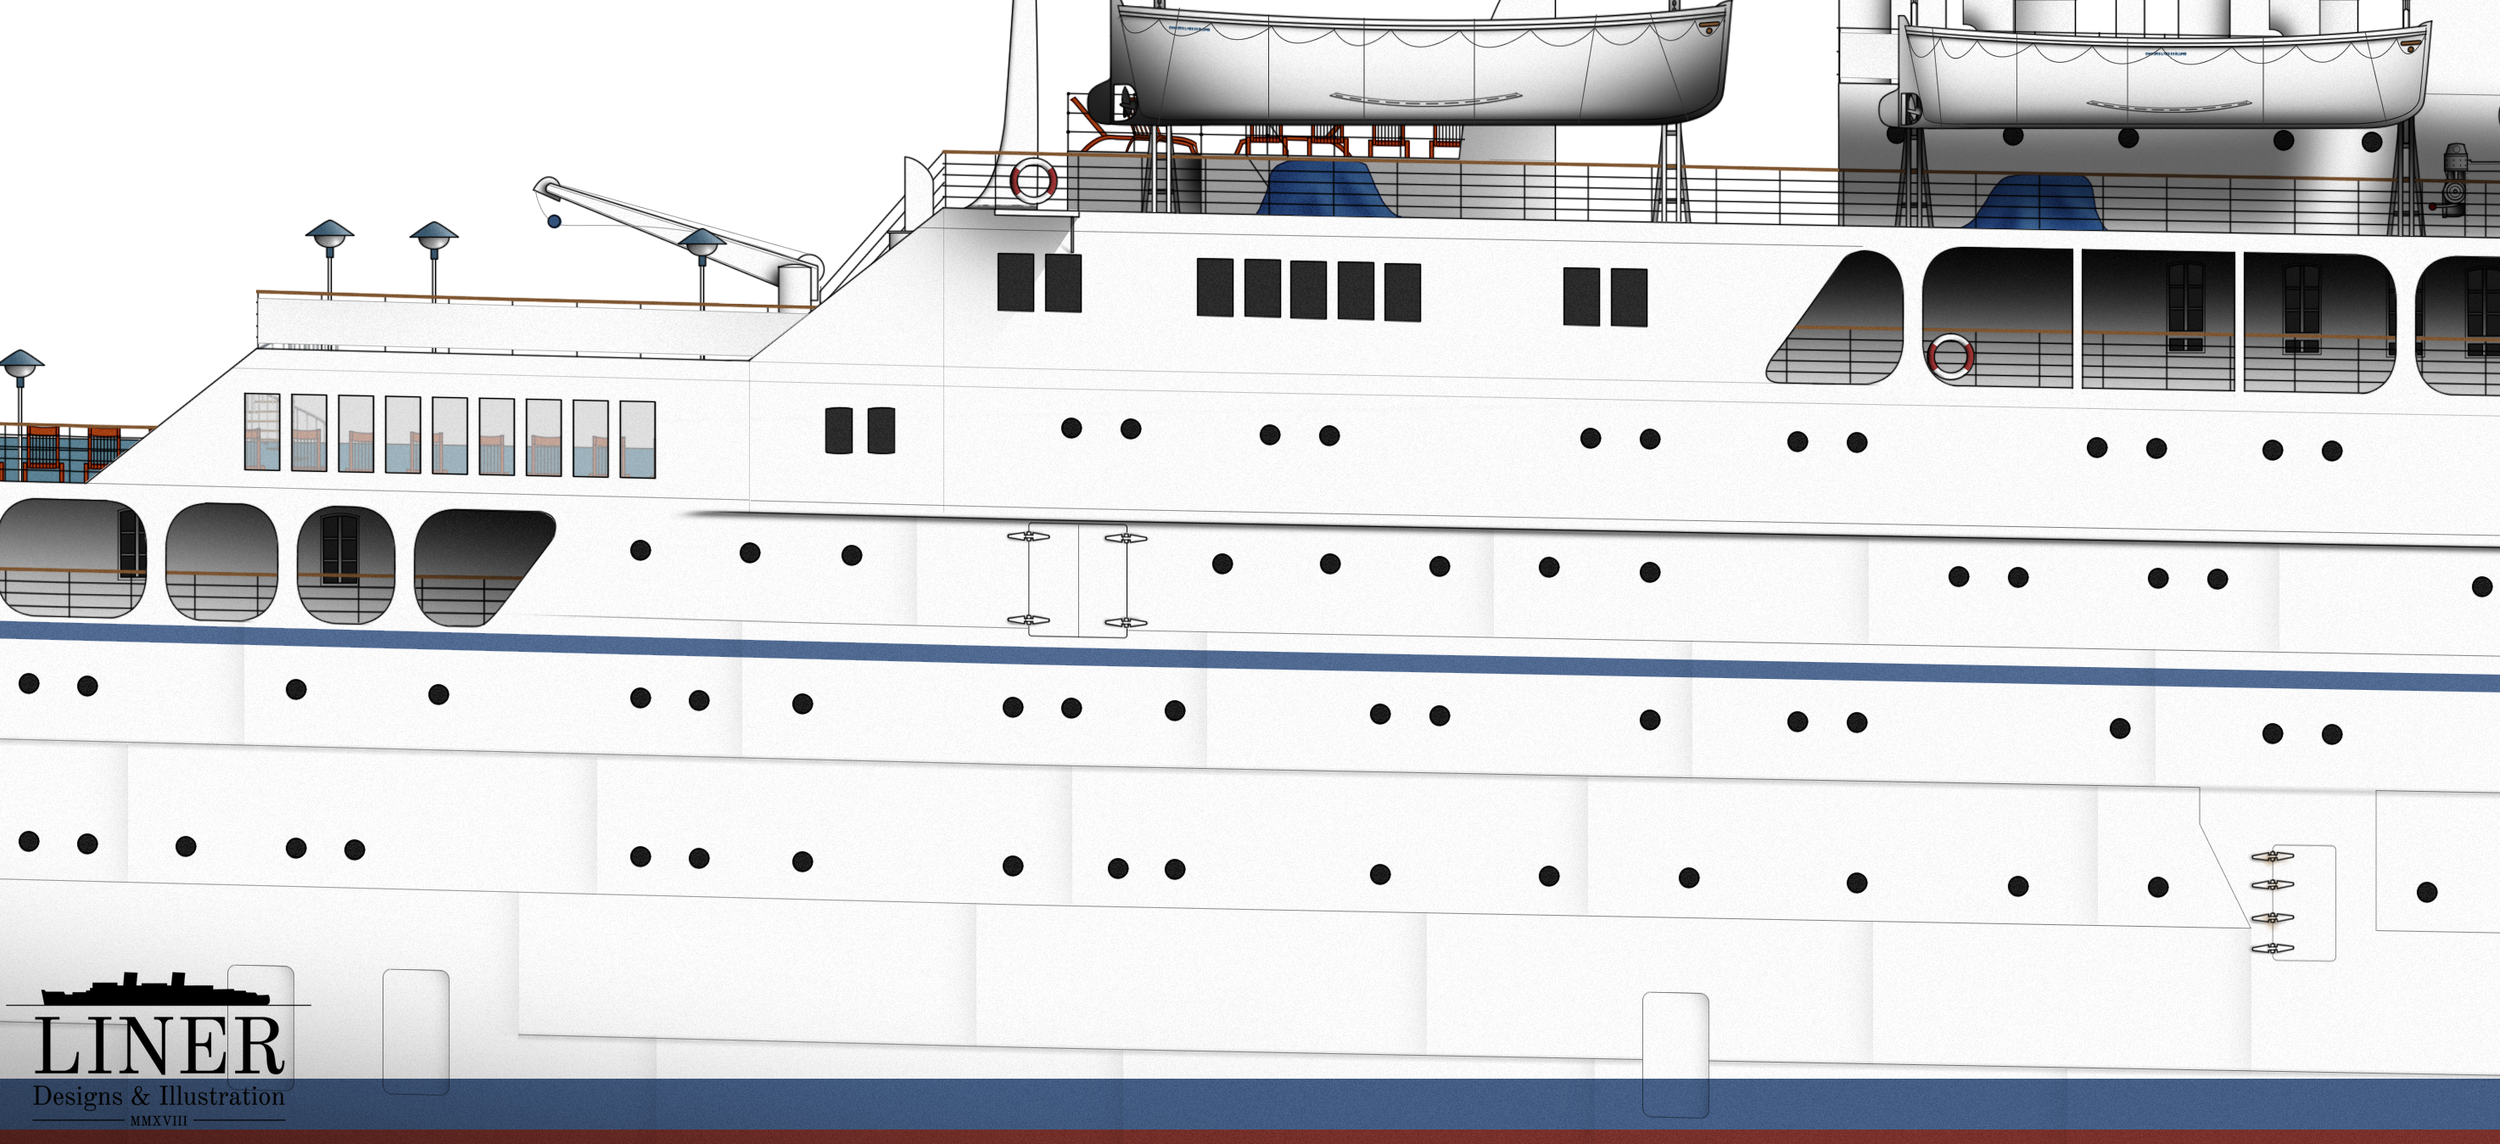 Ellinis' hull was permeated with shell doors for faster loading of passengers.